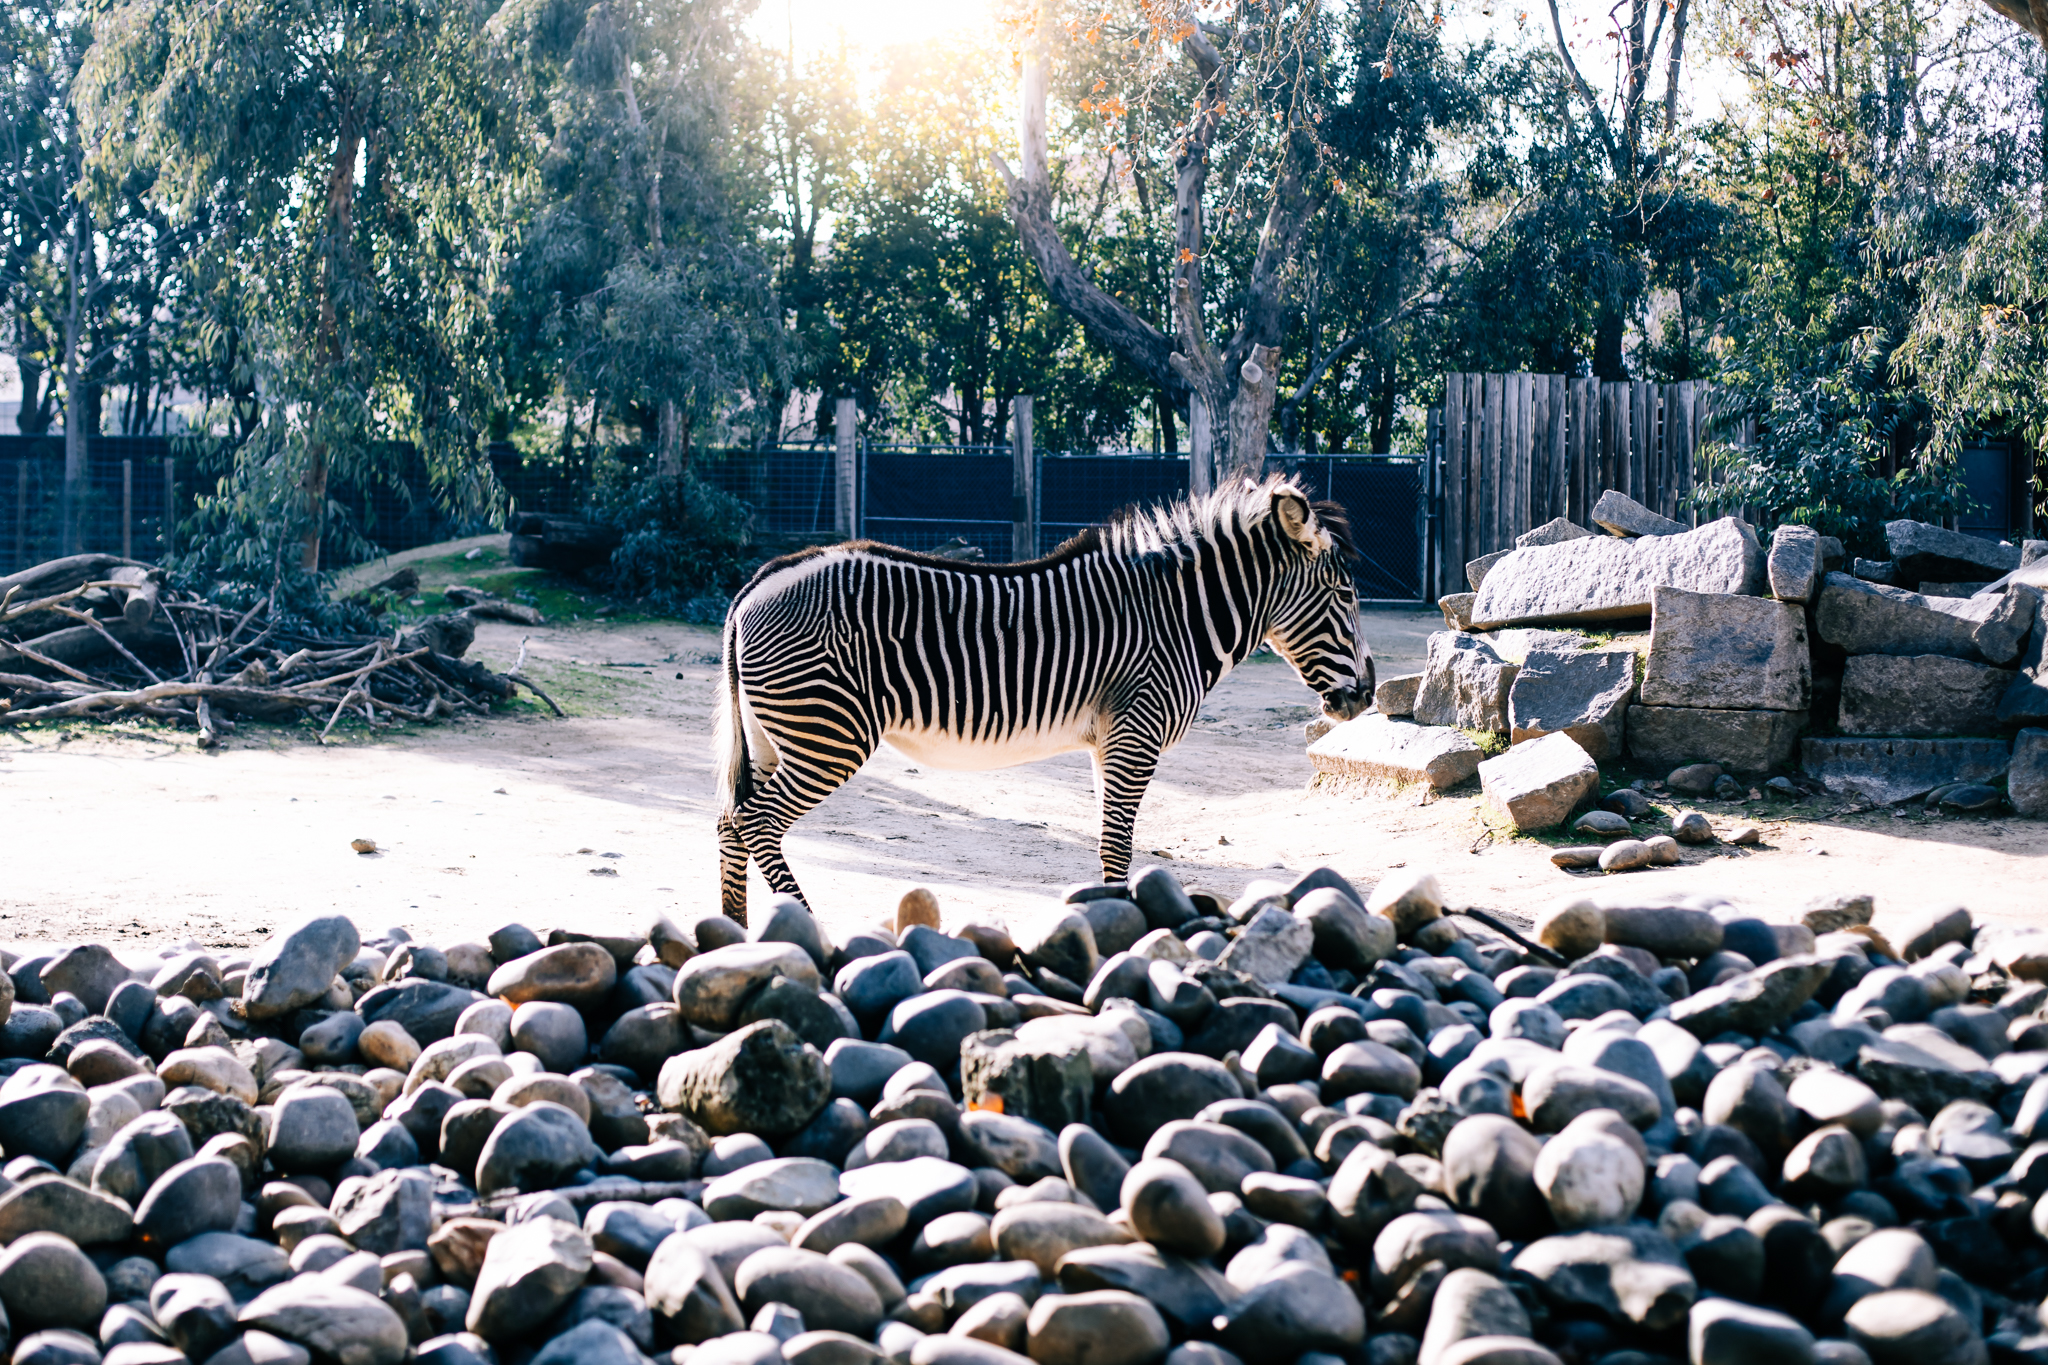 Sacramento Zoo by Lenkaland Photography